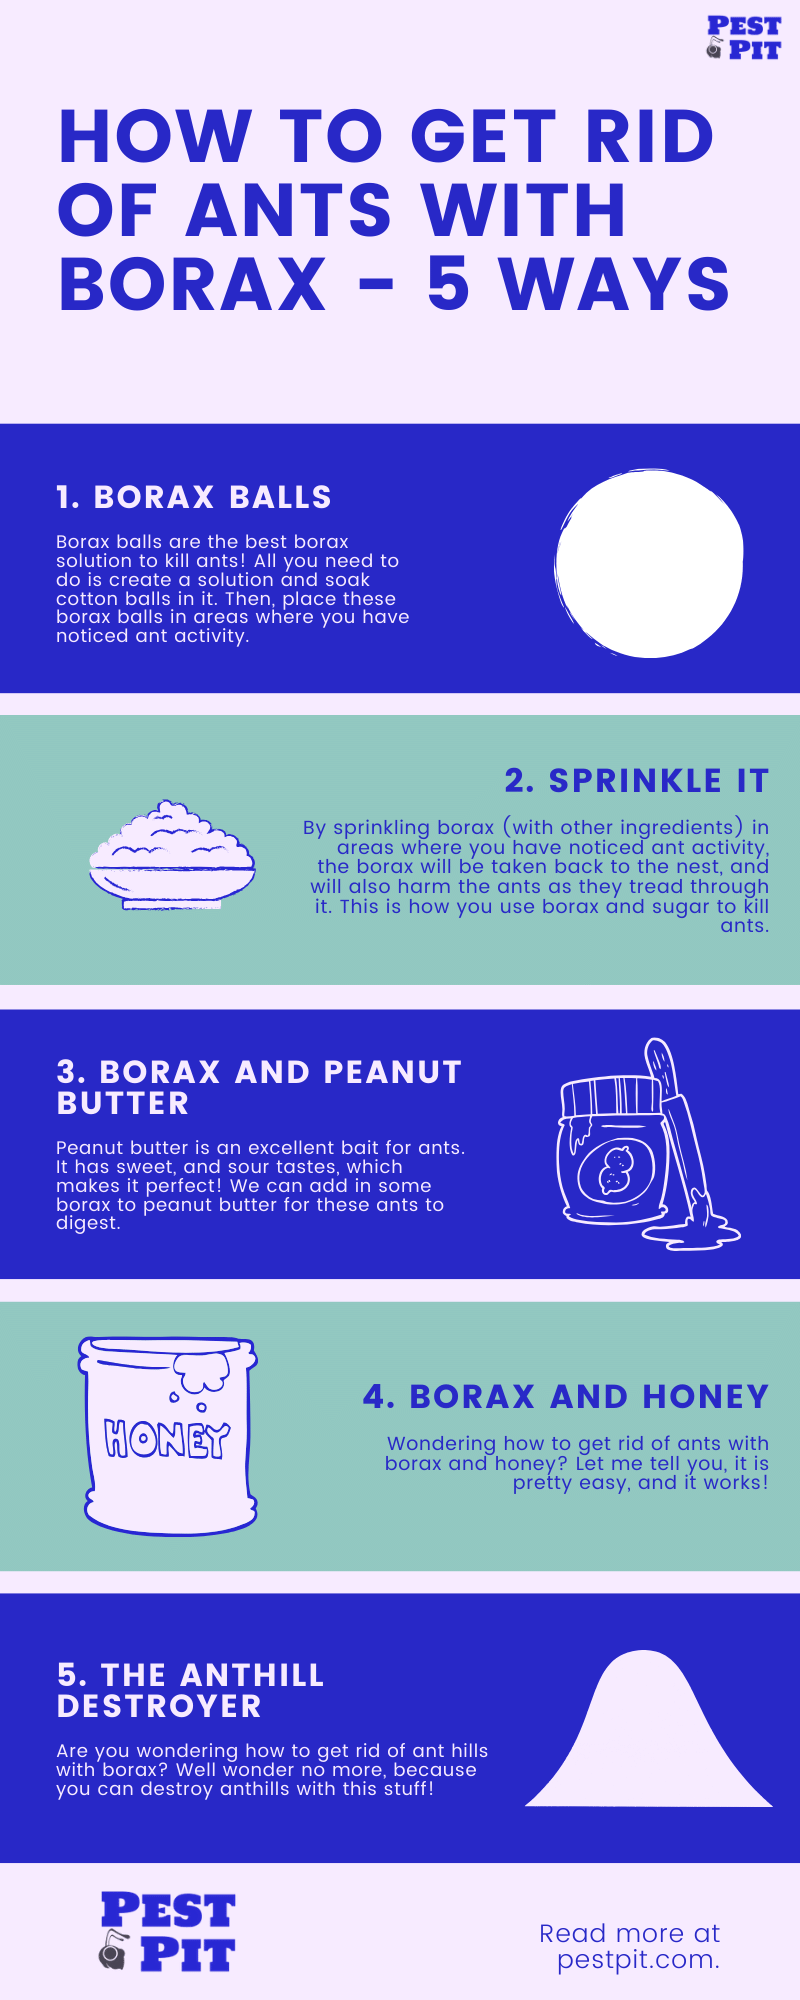 How To Get Rid Of Ants With Borax Infographic